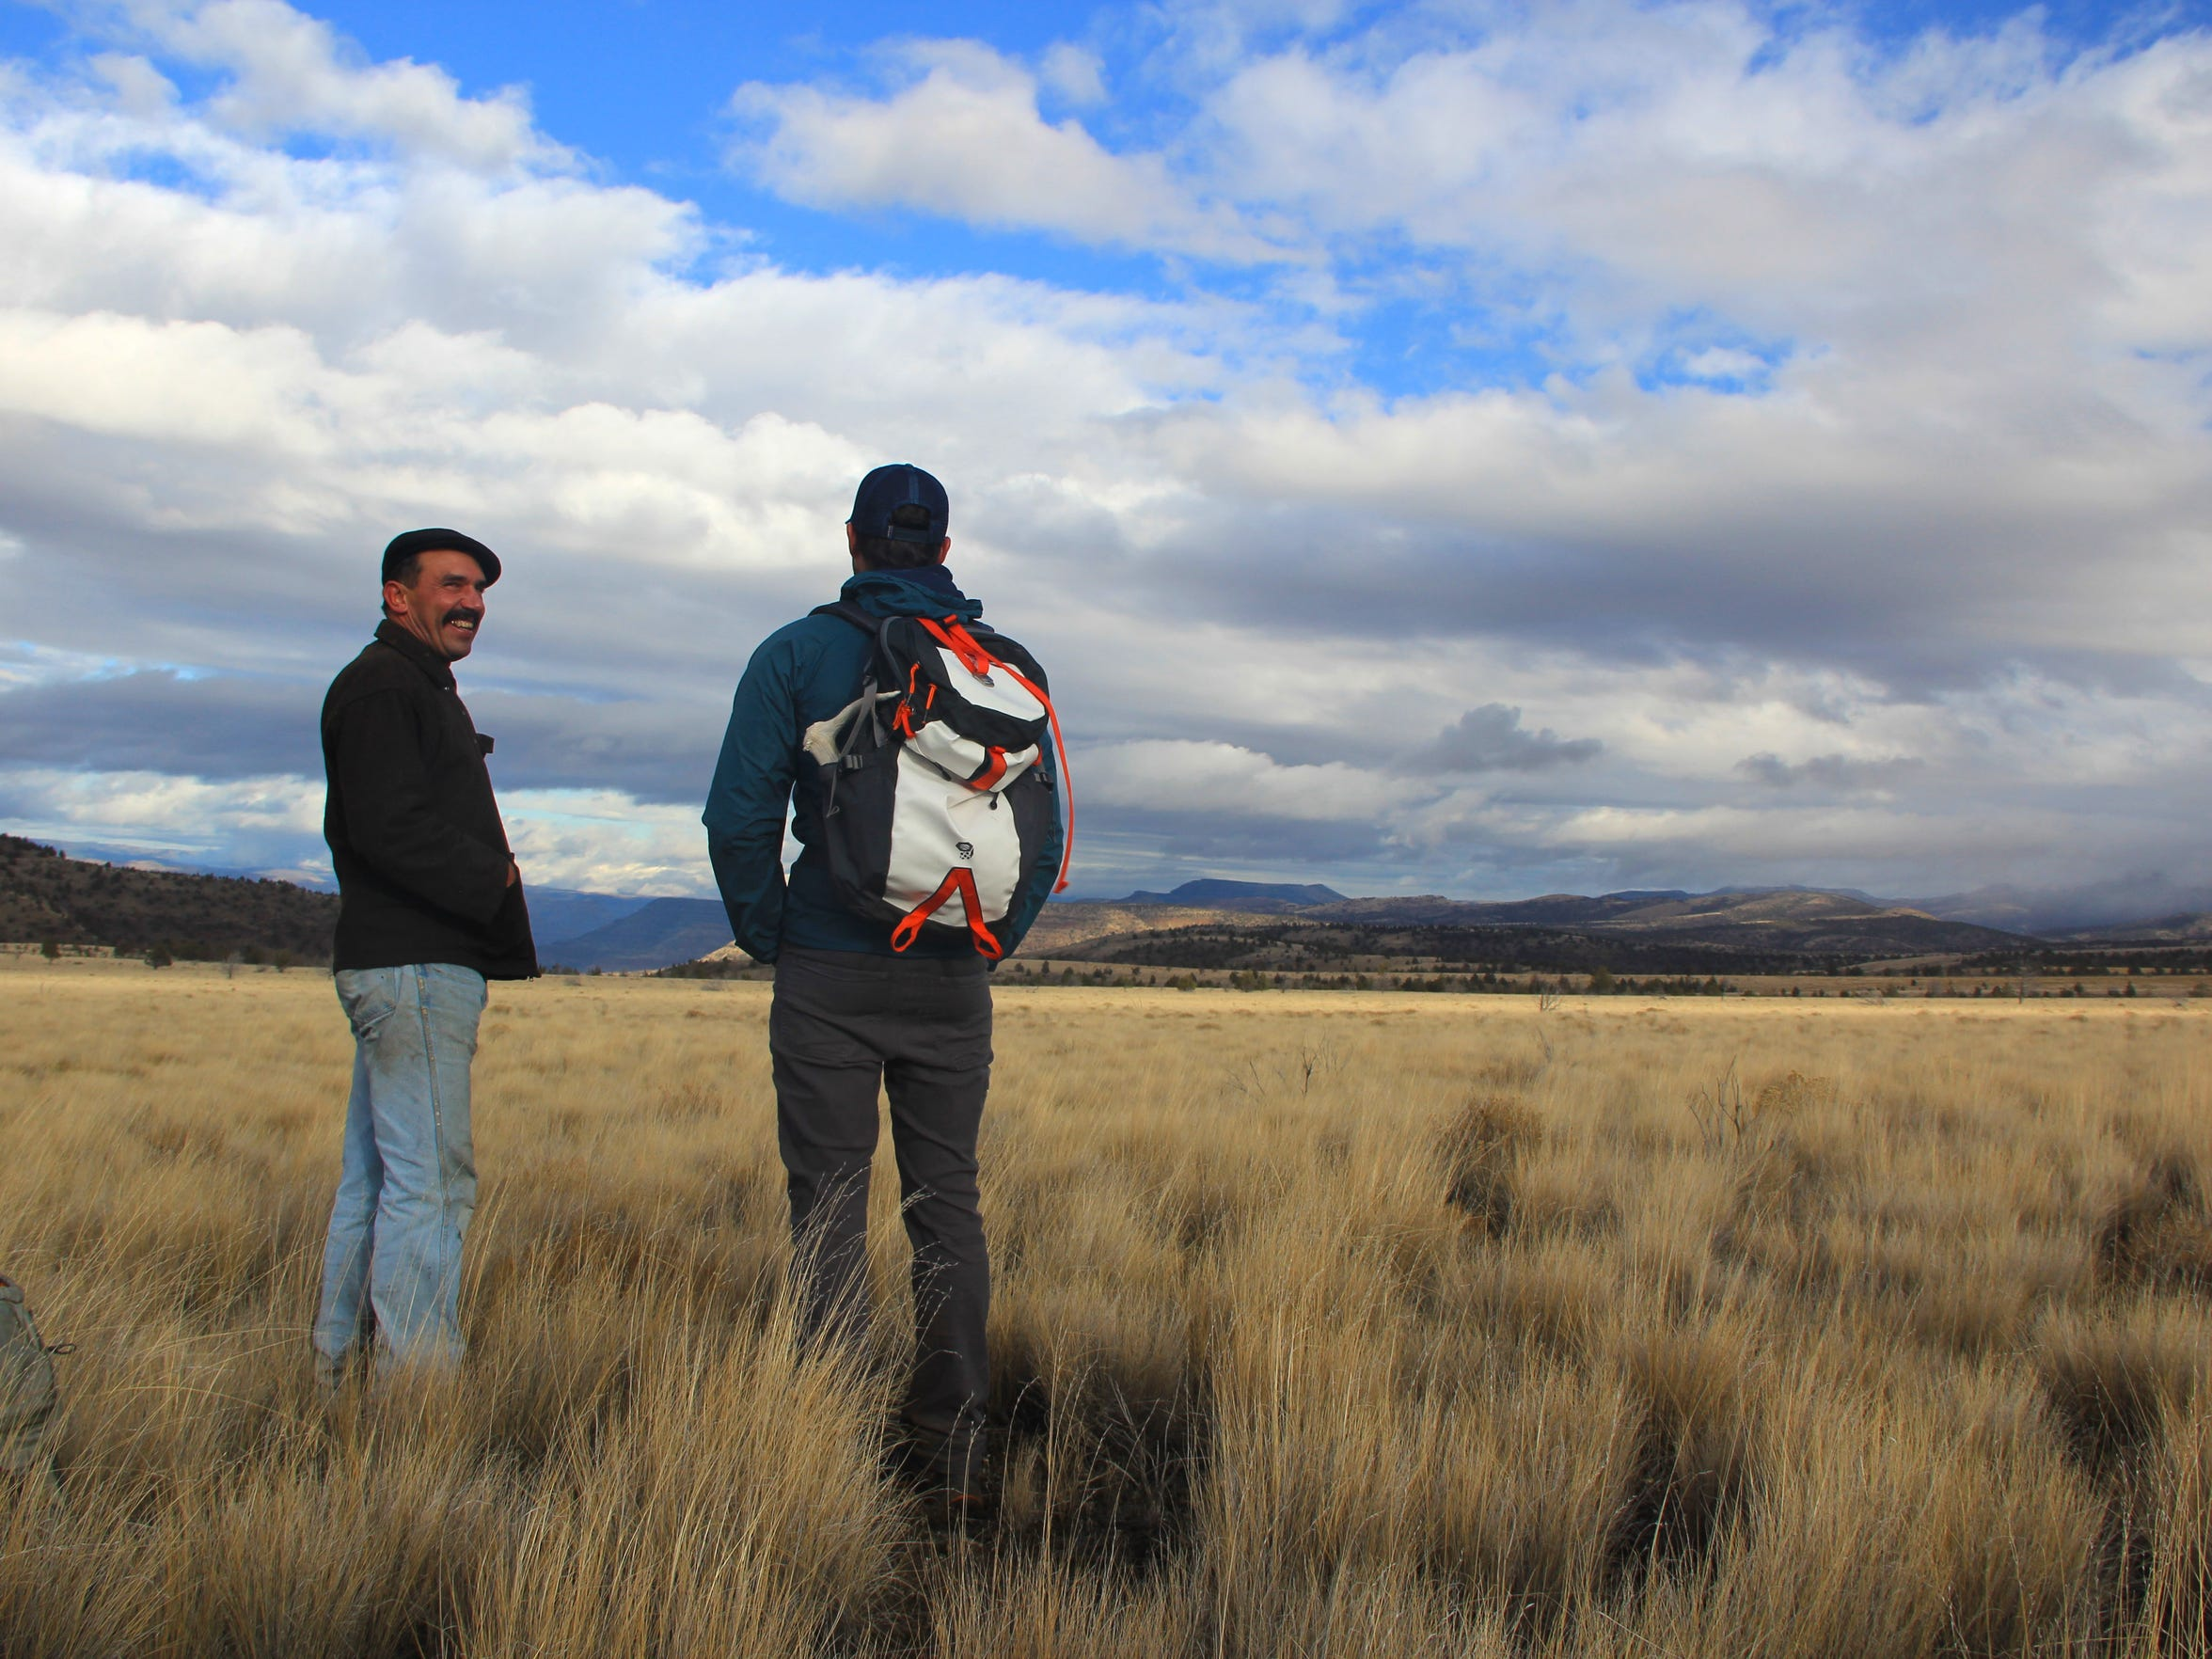 Wheeler County judge Chris Perry, left, and Ben Gordon, ONDA stewardship director, on the plateau of Eastern Oregon's Sutton Mountain.